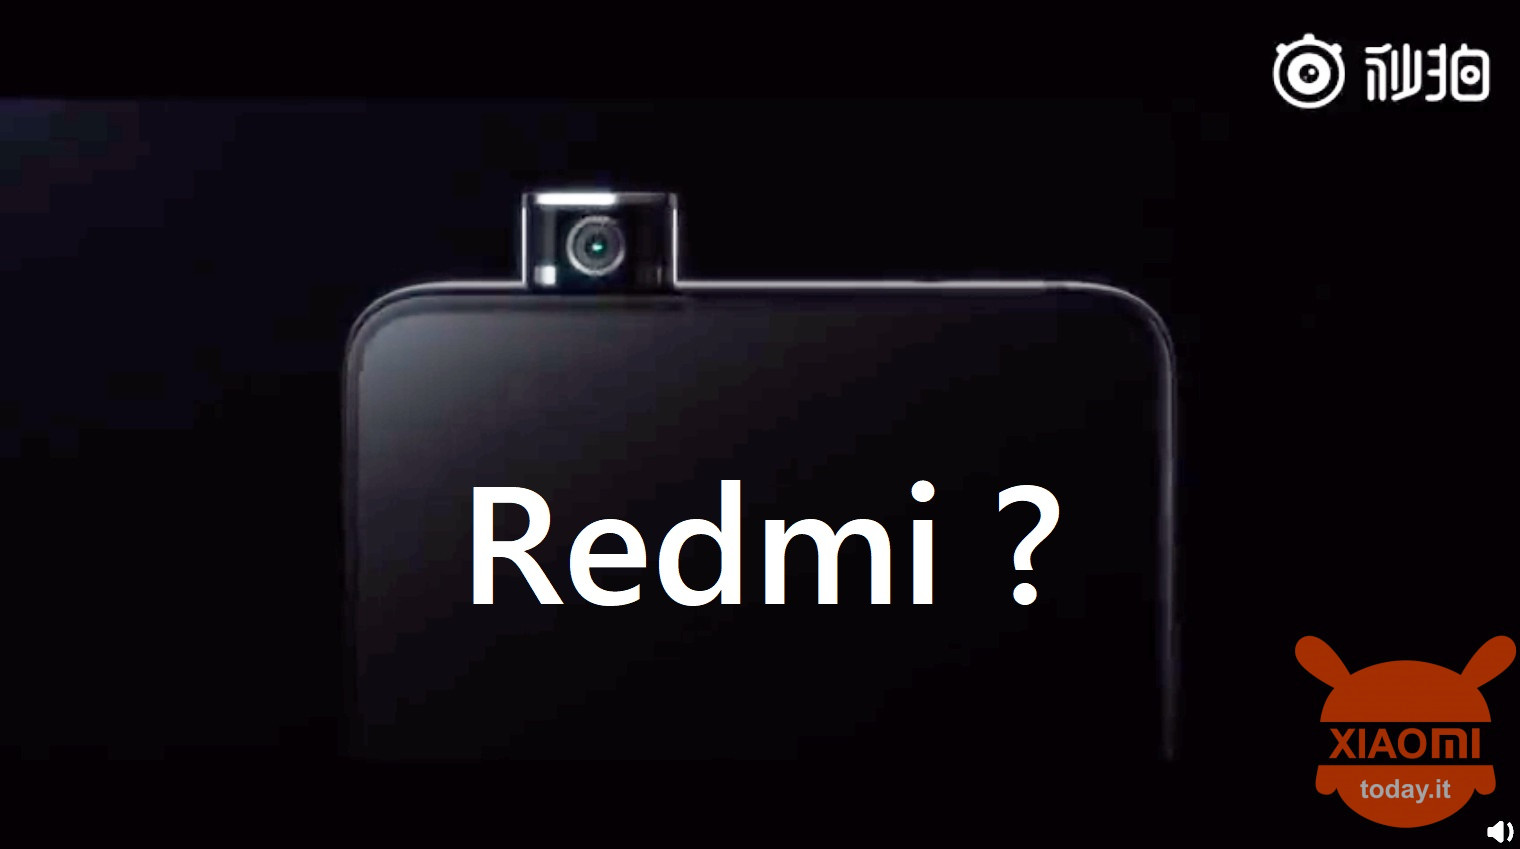 redmi vlaggenschip teaser pop-op camera